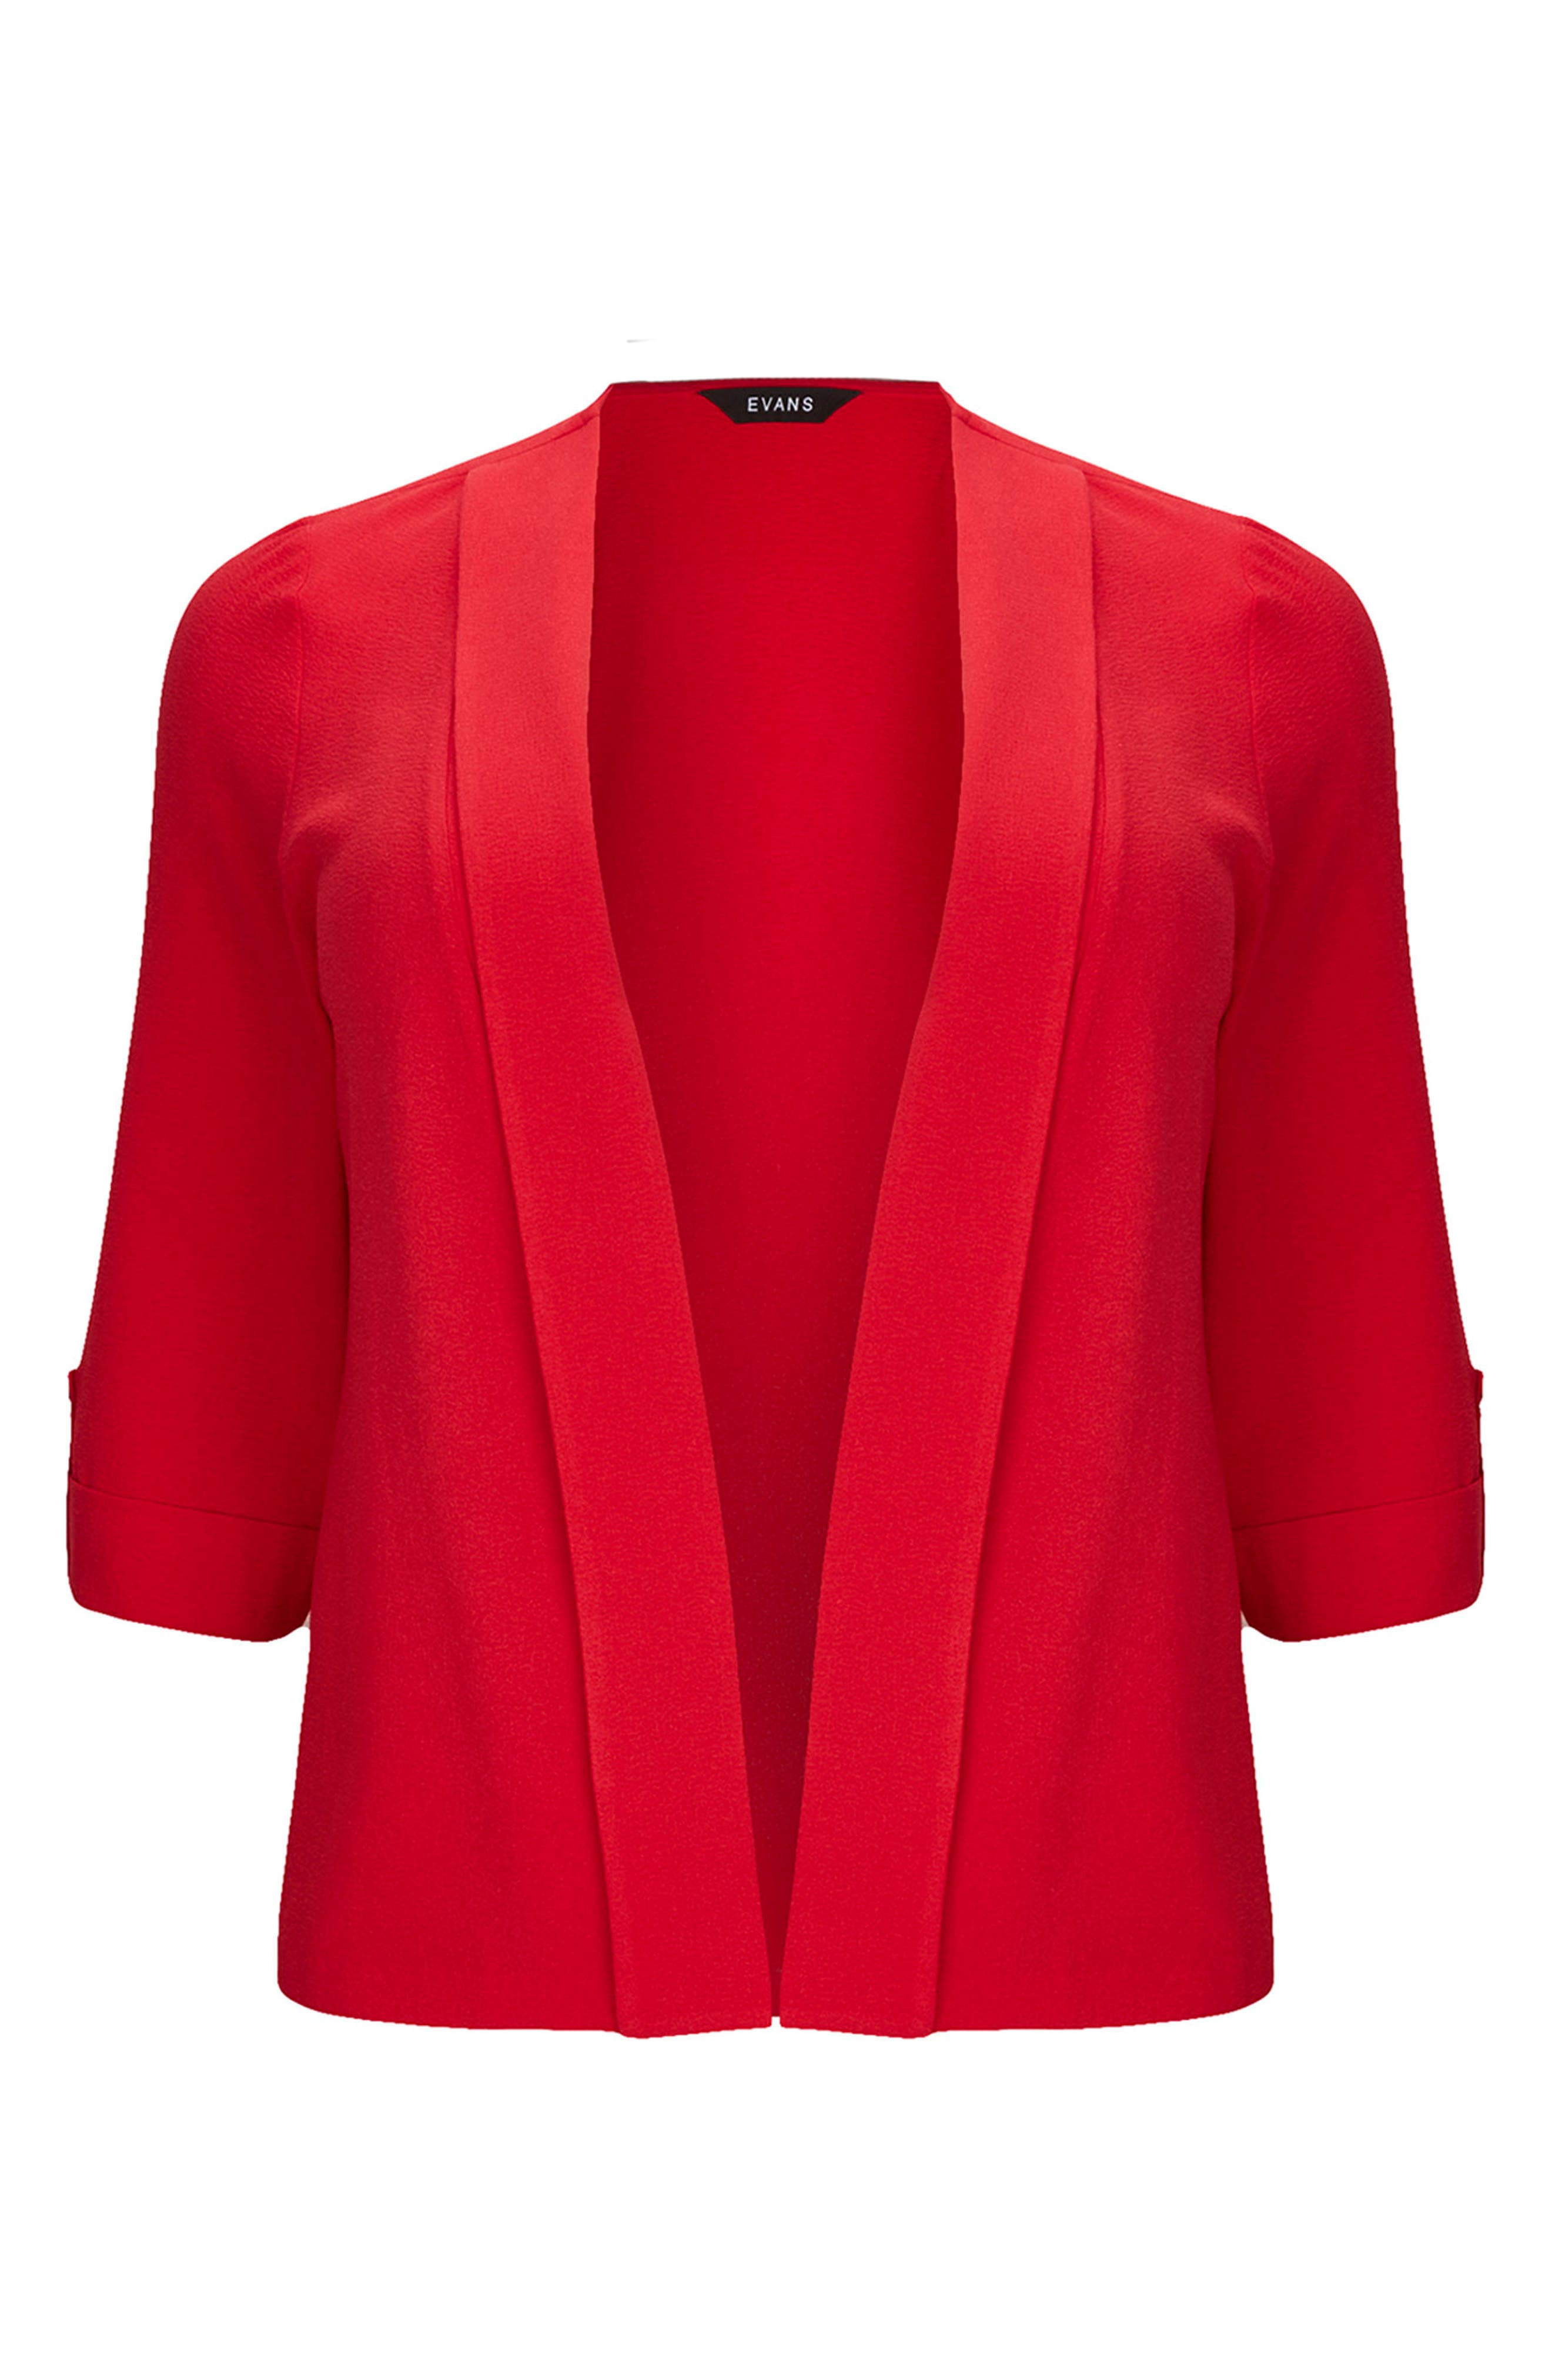 Panel Jacket,                         Main,                         color, Red